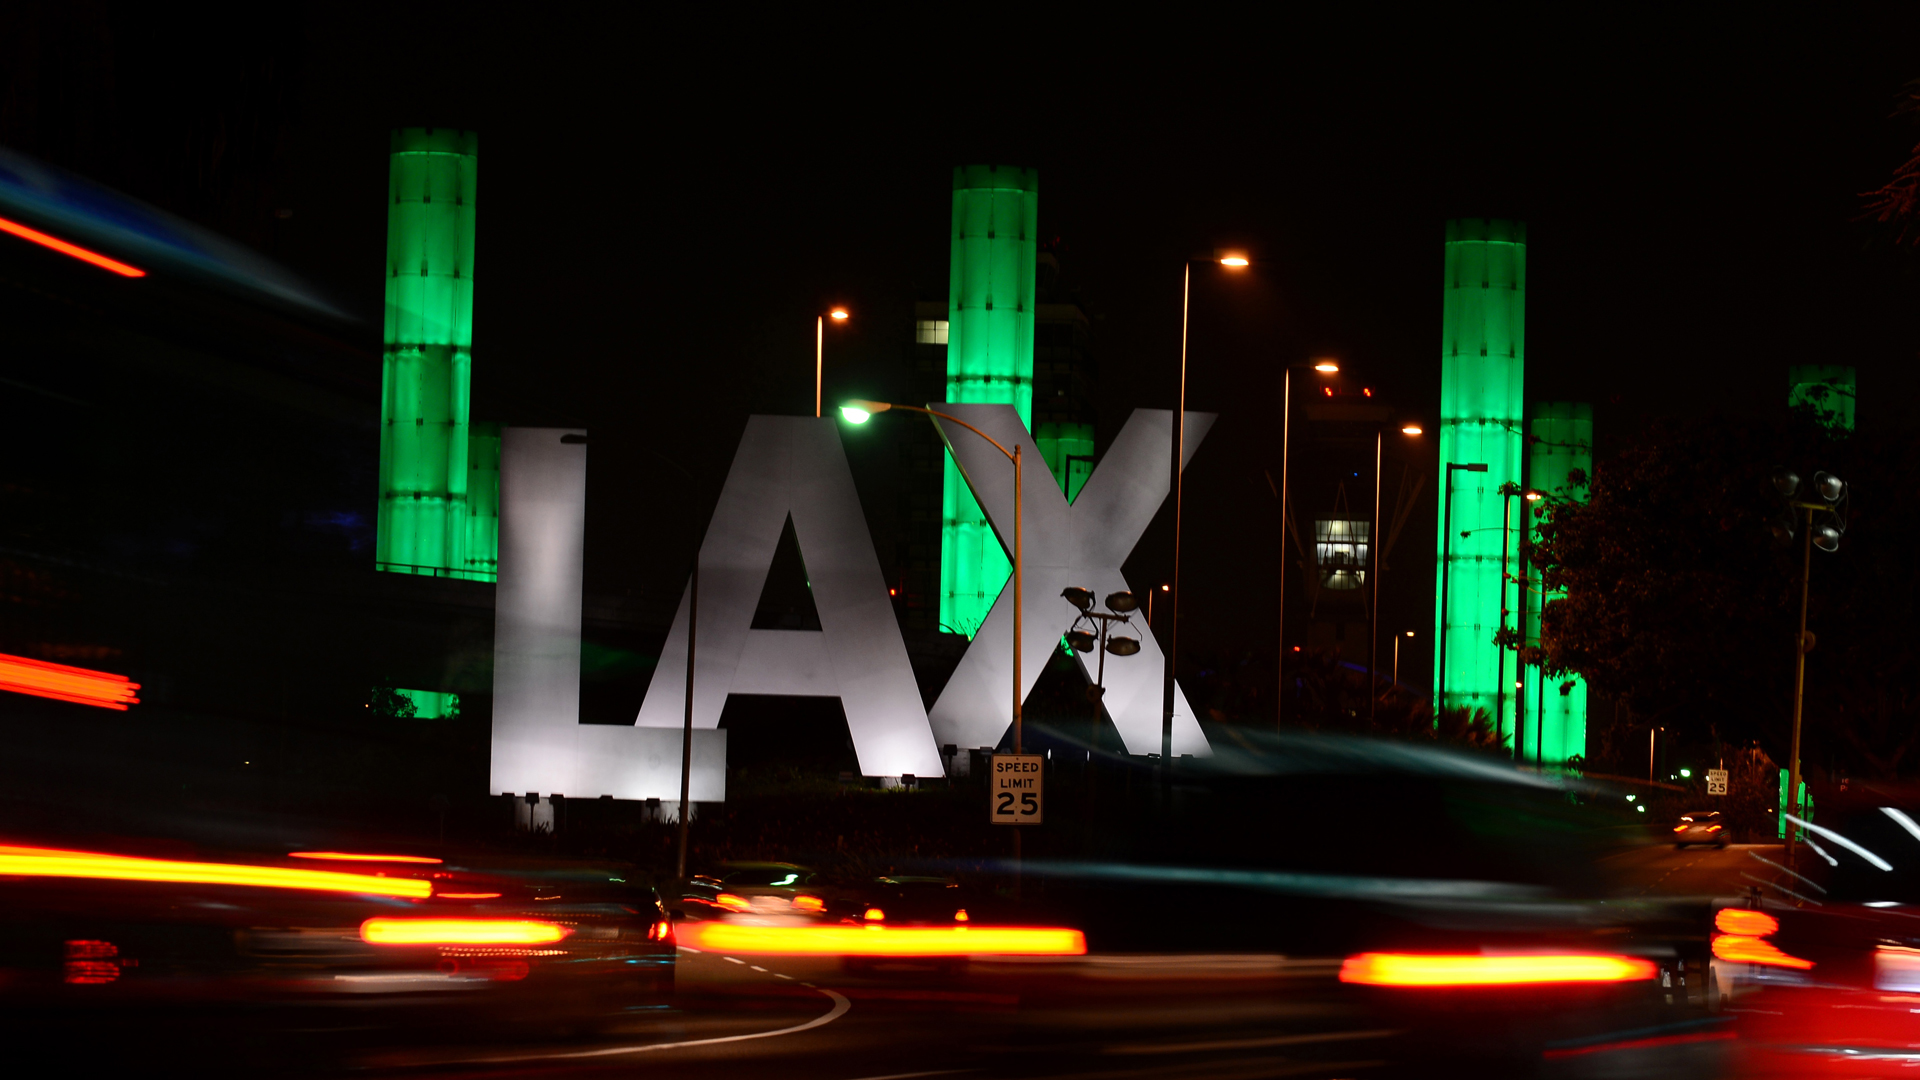 The 100-foot LAX Gateway pylons at Los Angeles International Airport are lit green on March 23, 2013. (FREDERIC J. BROWN/AFP via Getty Images)